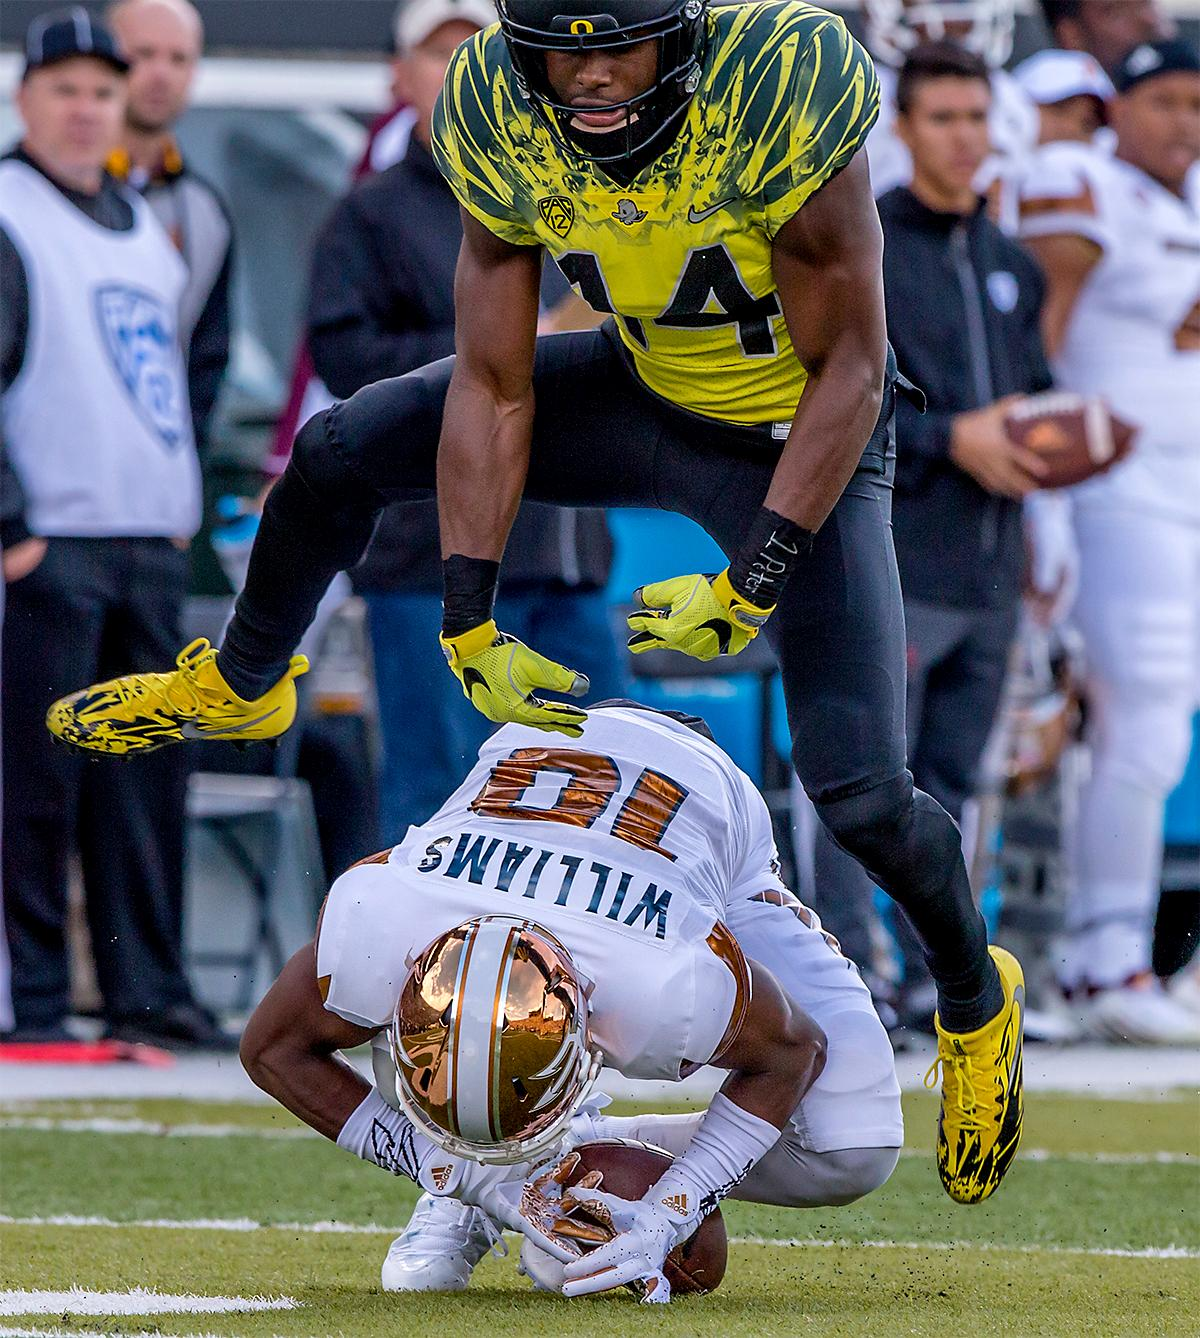 The Duck's Ugo Amadi (#14) jumps over the Sun Devils' Kyle Williams (#10) as Williams makes a catch. The Oregon Ducks broke their losing streak by defeating the ASU Sun Devils on Saturday 54-35. Photo by August Frank, Oregon News Lab